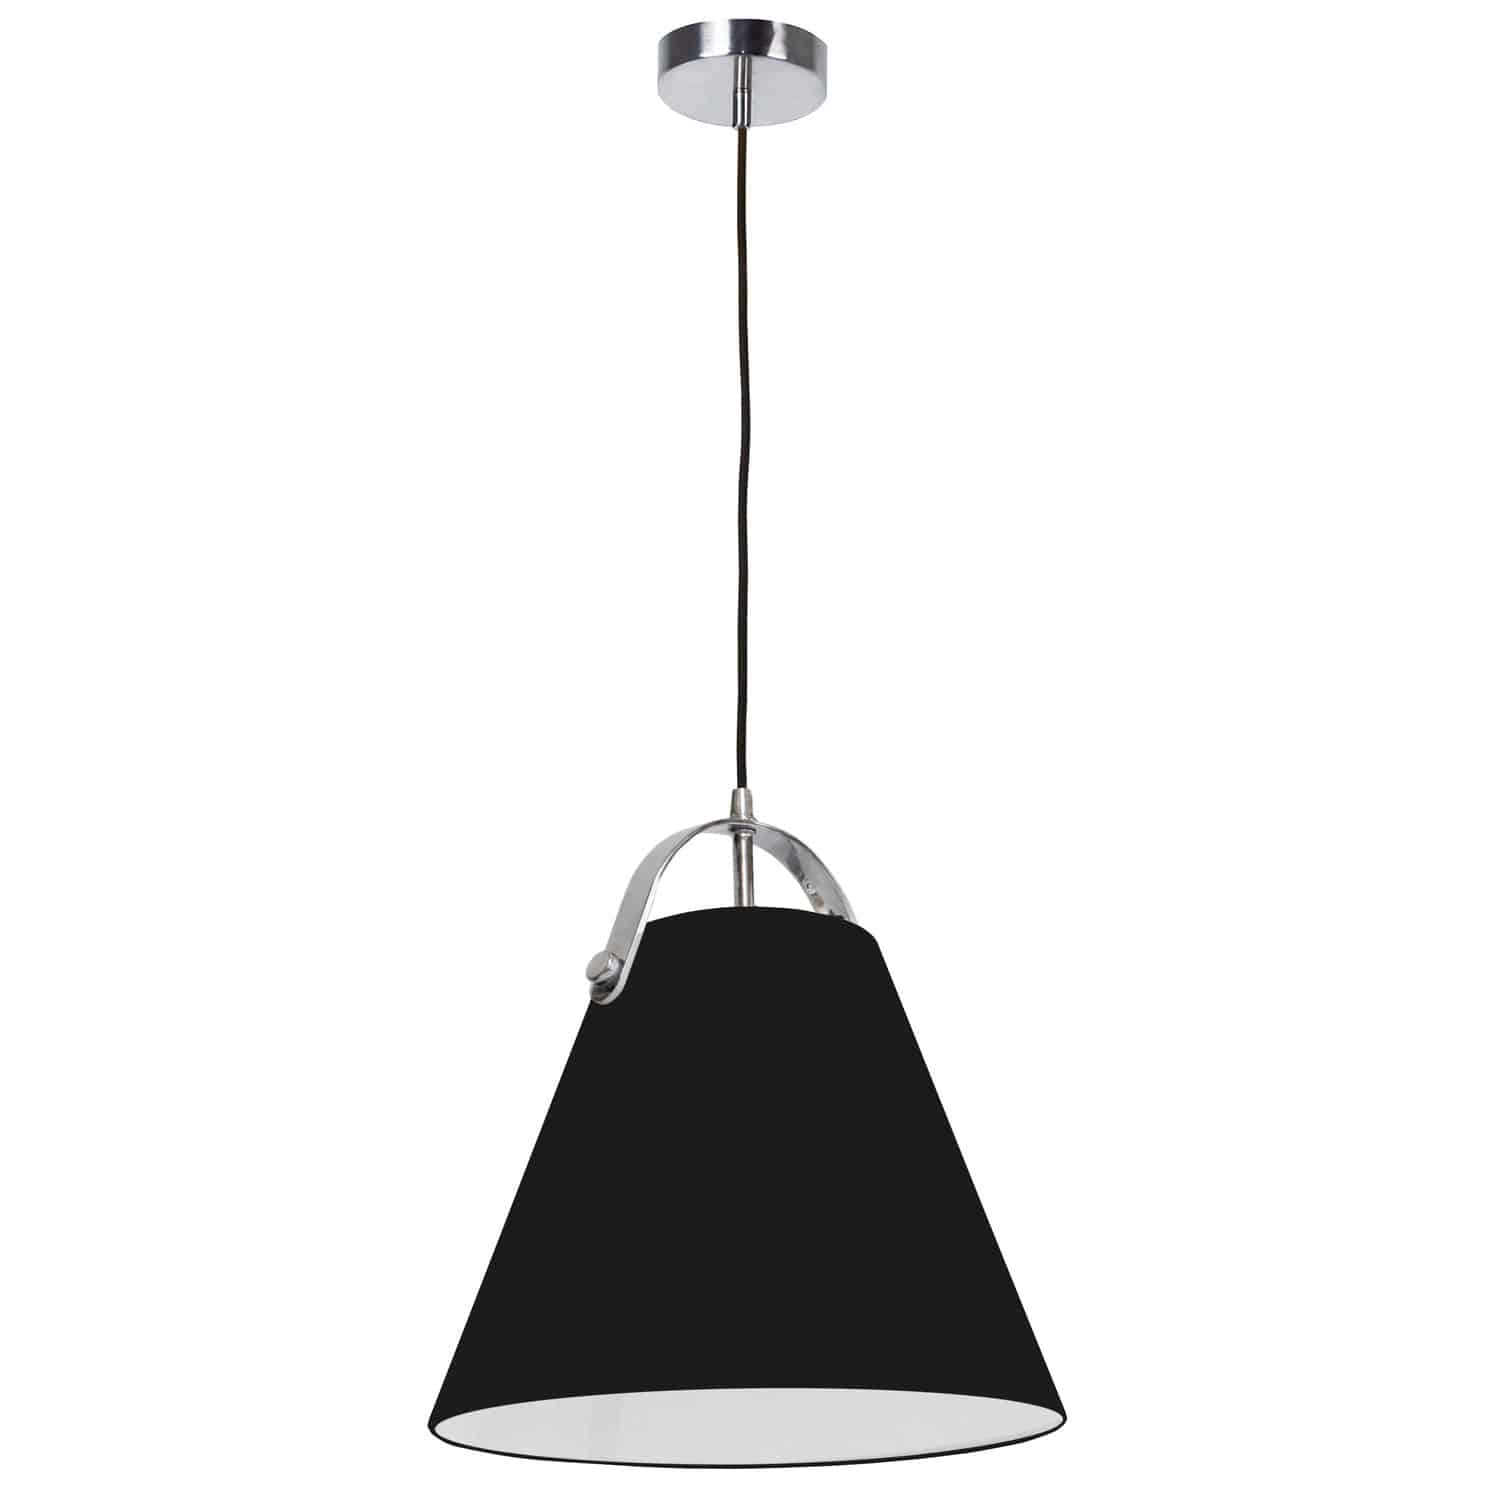 1 Light Emperor Pendant Polished Chrome with Black Shade